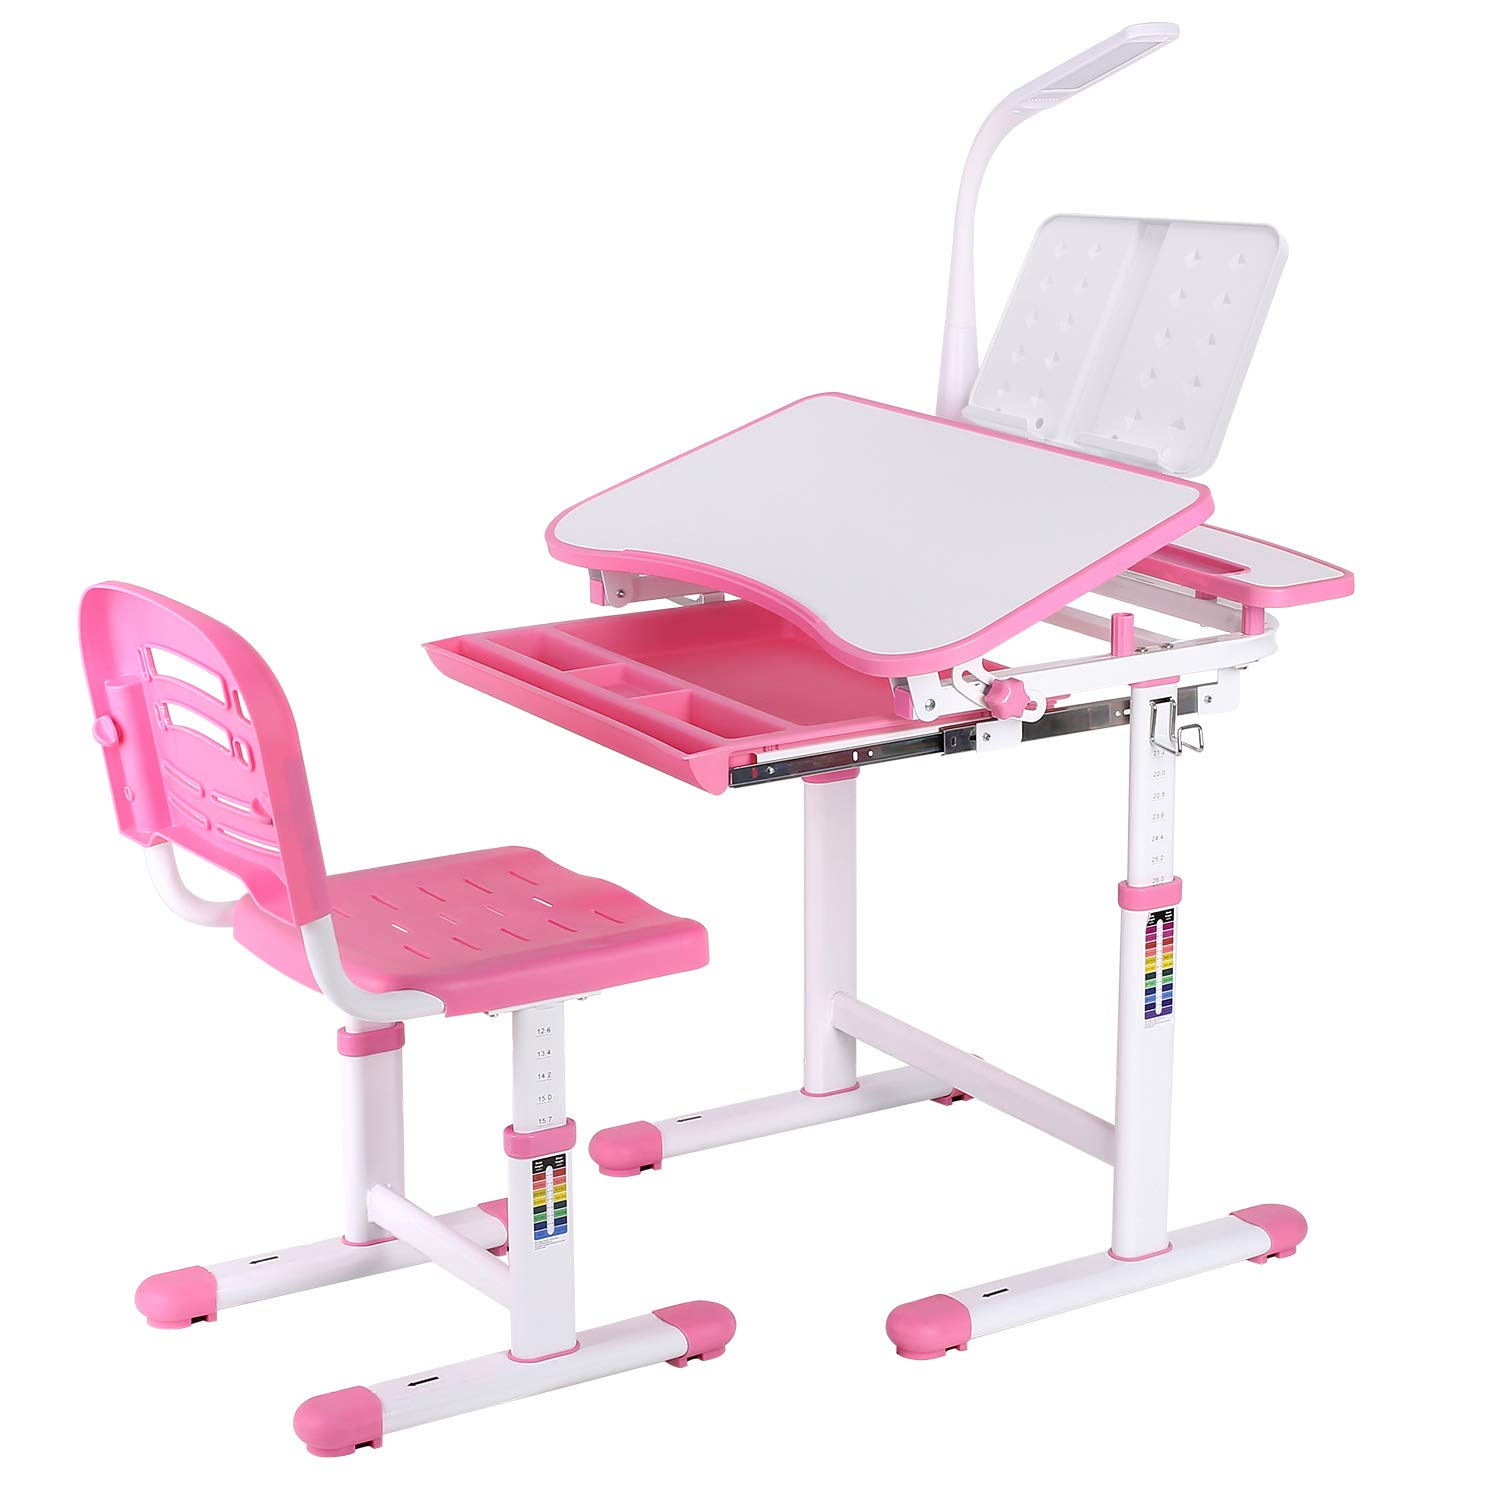 POTBY Kids Desk and Chair Set, Height Adjustable Children Study Table with Wood Tiltable Anti-Reflective Tabletop, Bookstand, Pull-Out Drawer Storage and Touch Led for School Students (Pink) by POTBY